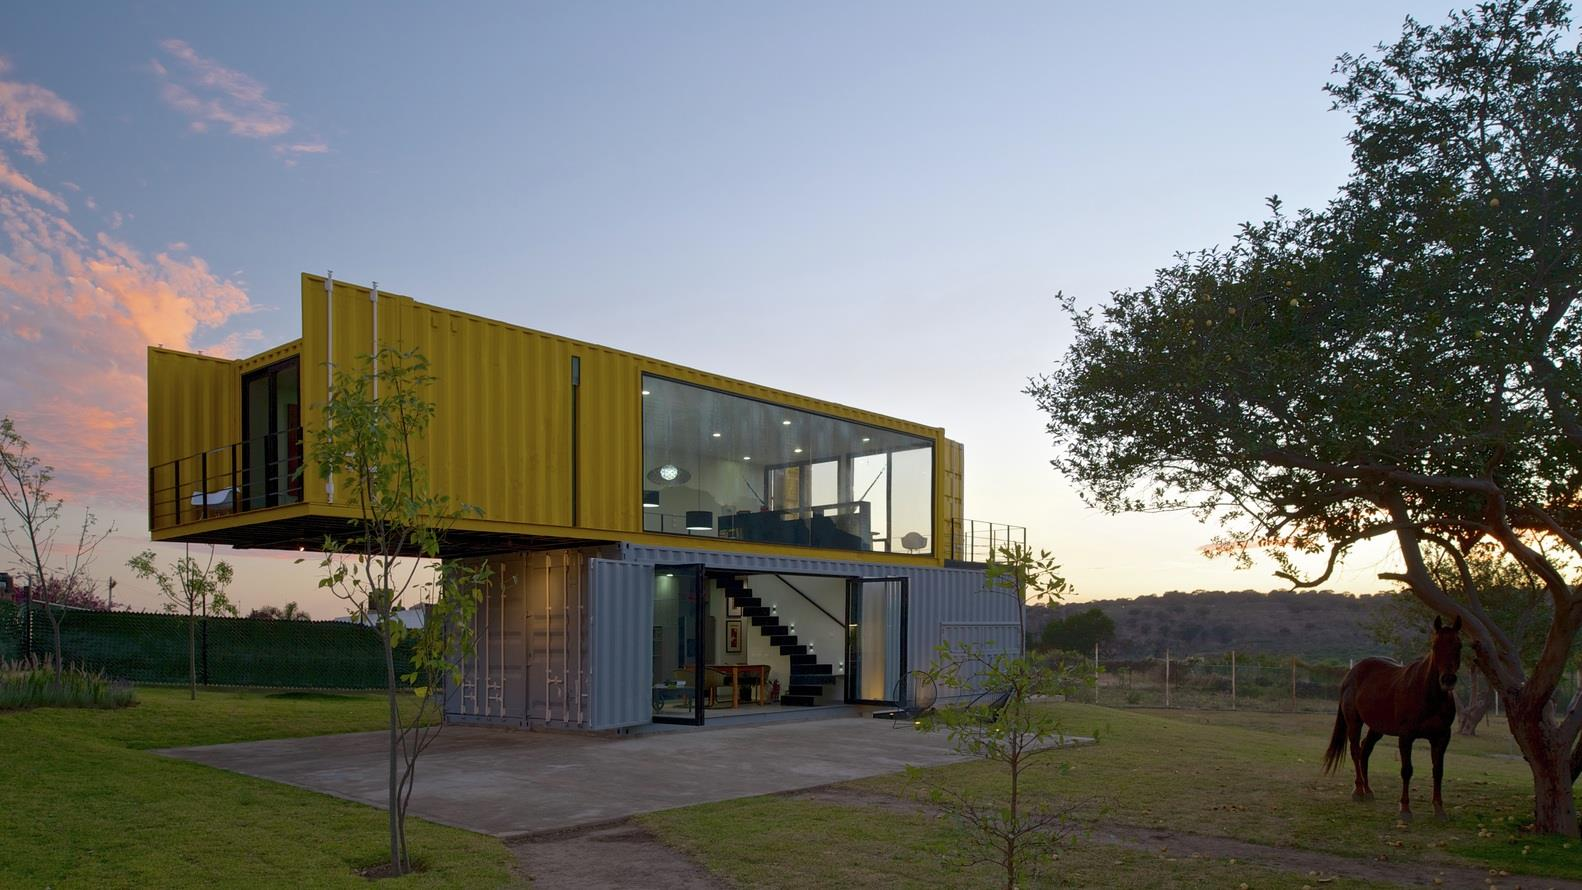 Container Haus Irland Tempohousing Transforms Shipping Containers To Homes For N2 000 000